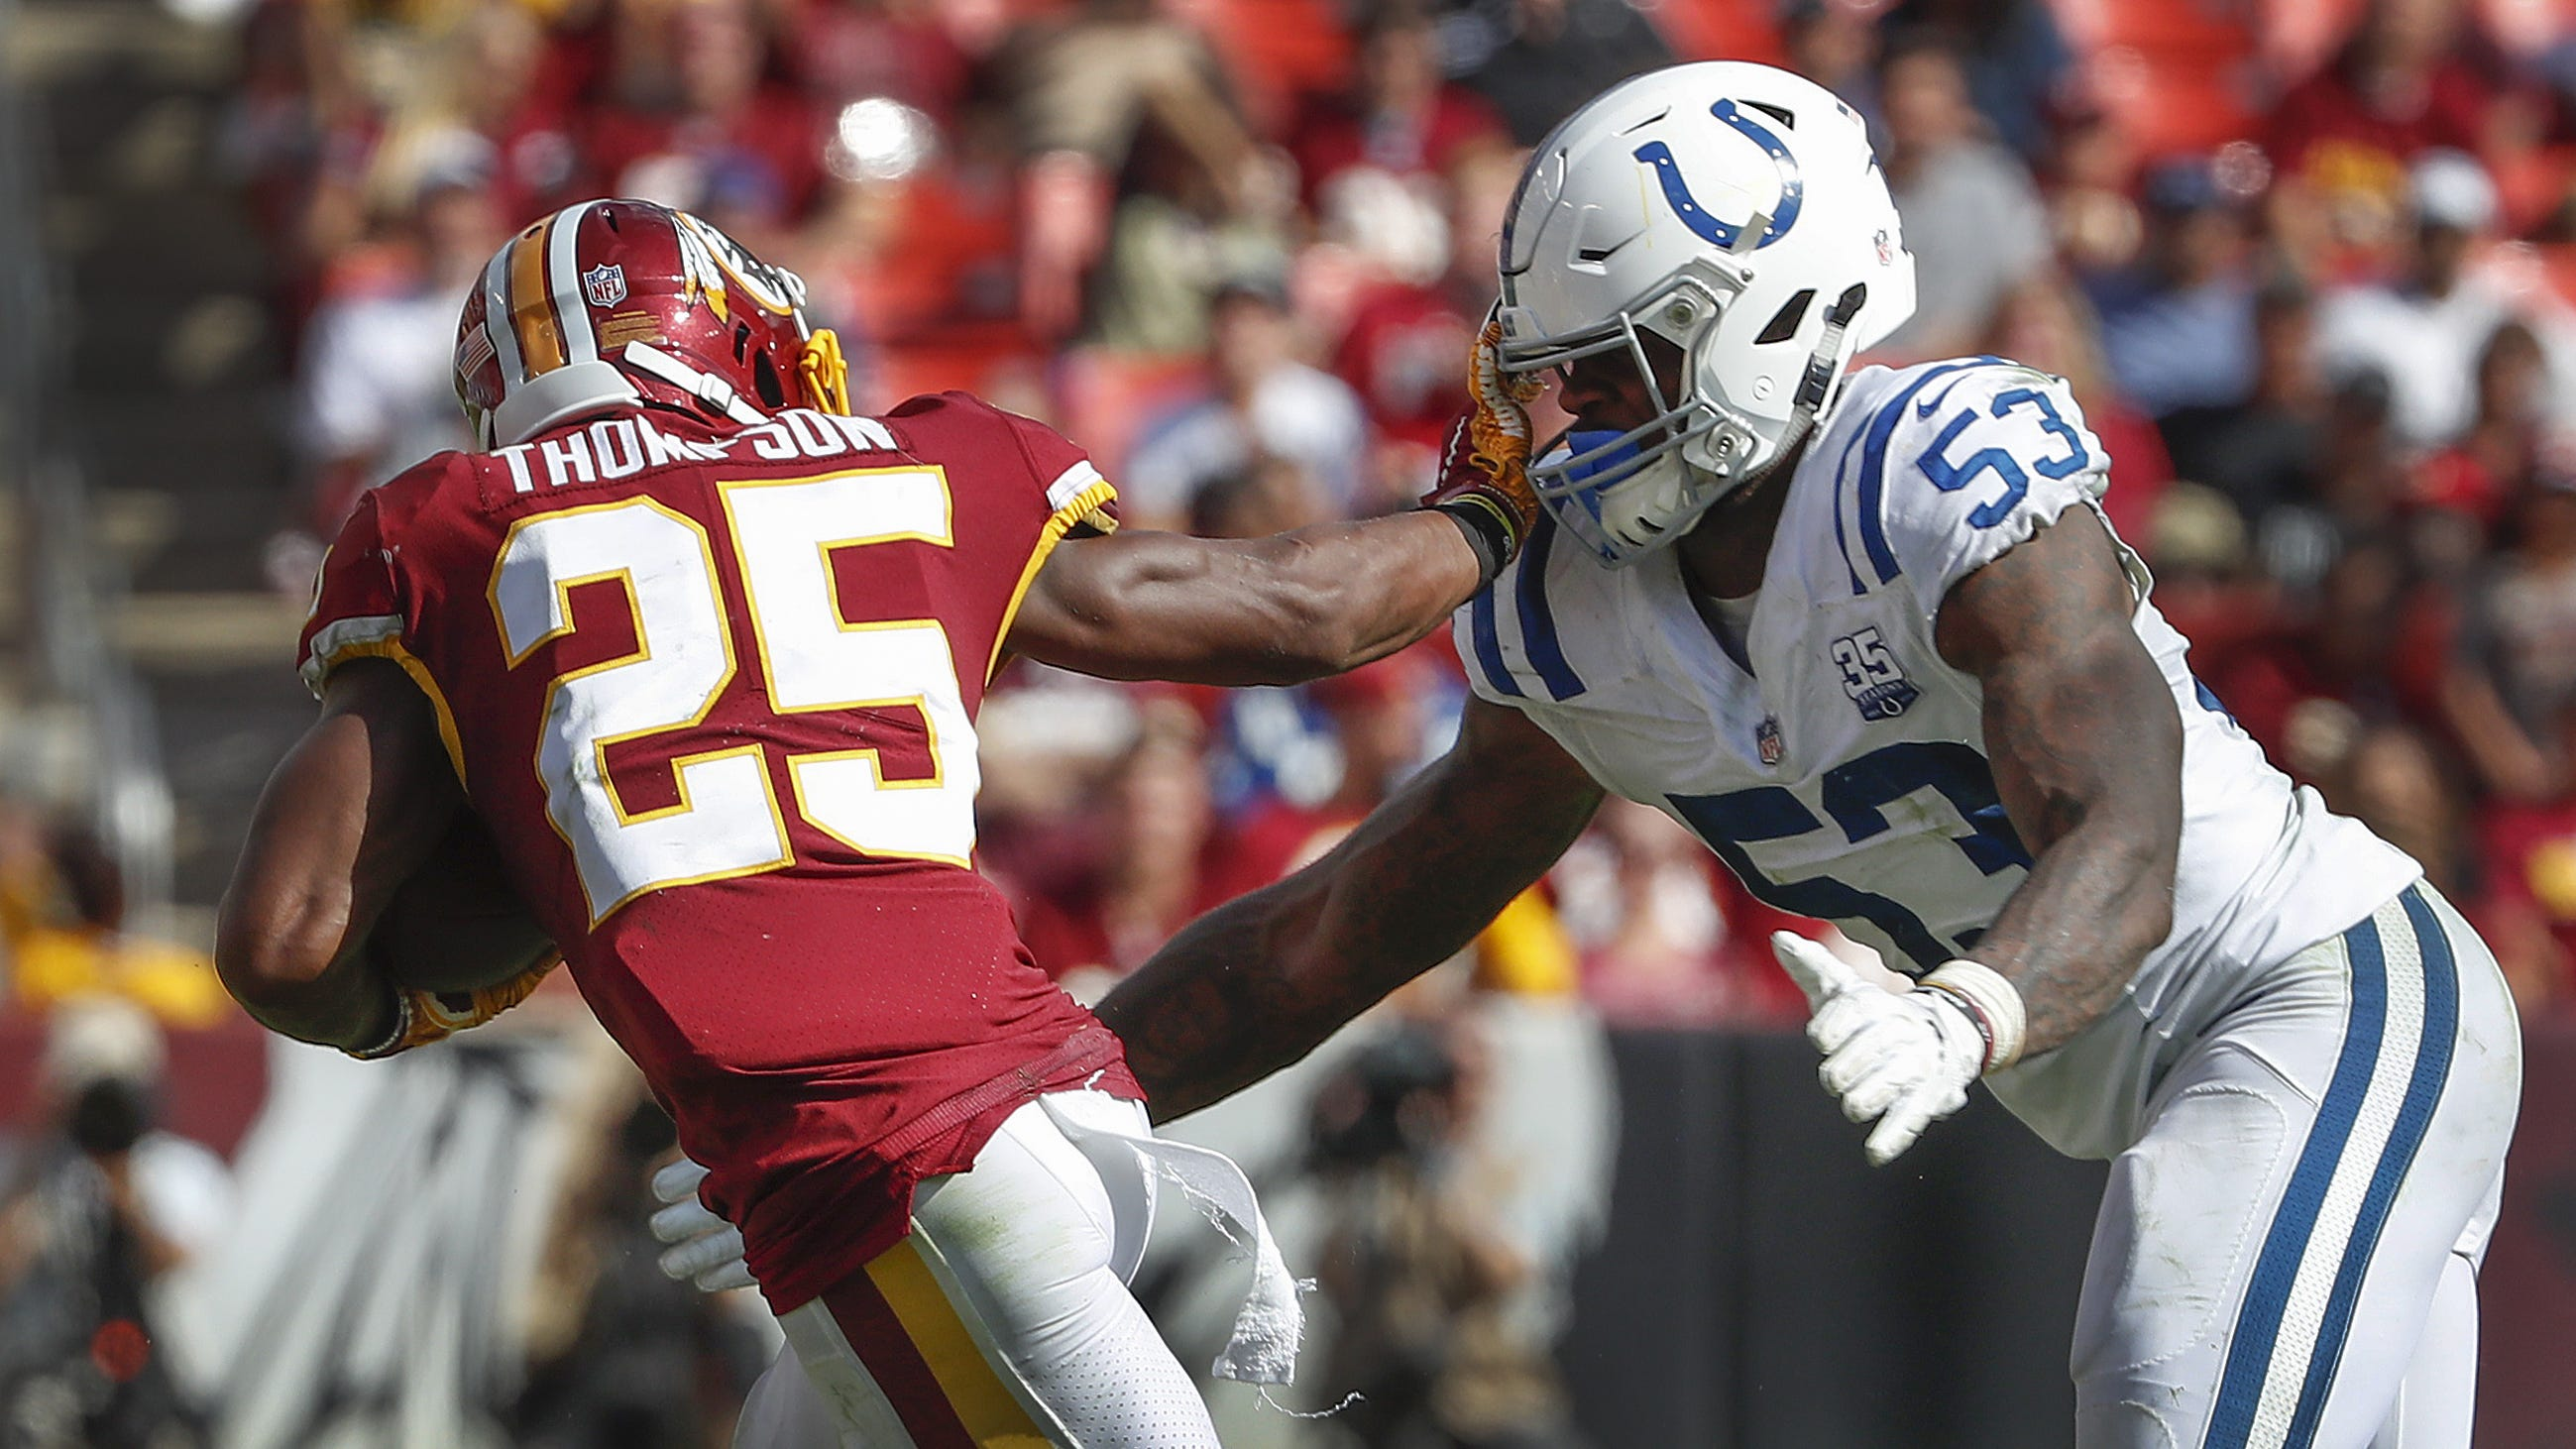 Colts ranked 20th in NFL in terms of value by Forbes